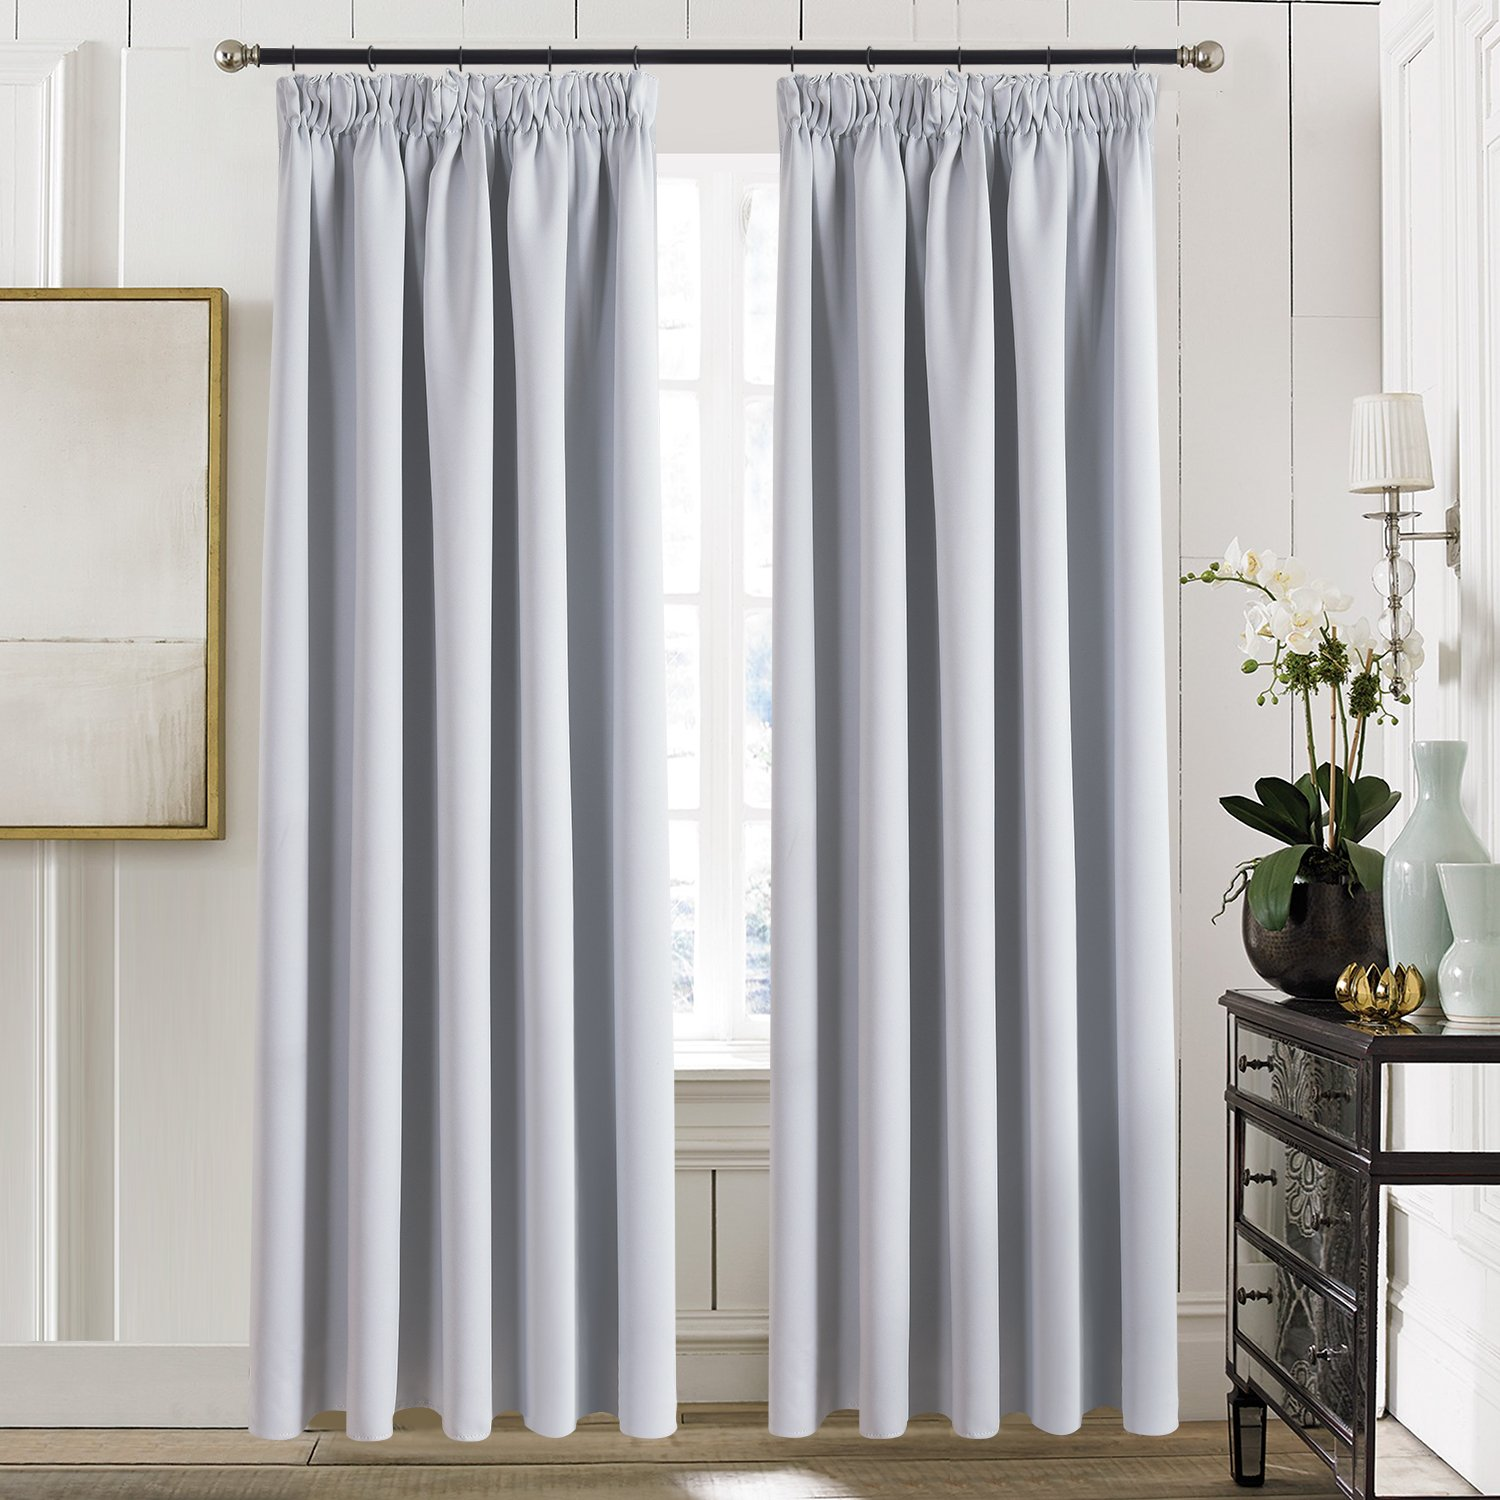 Luxury Curtains for Living Room: Amazon.co.uk